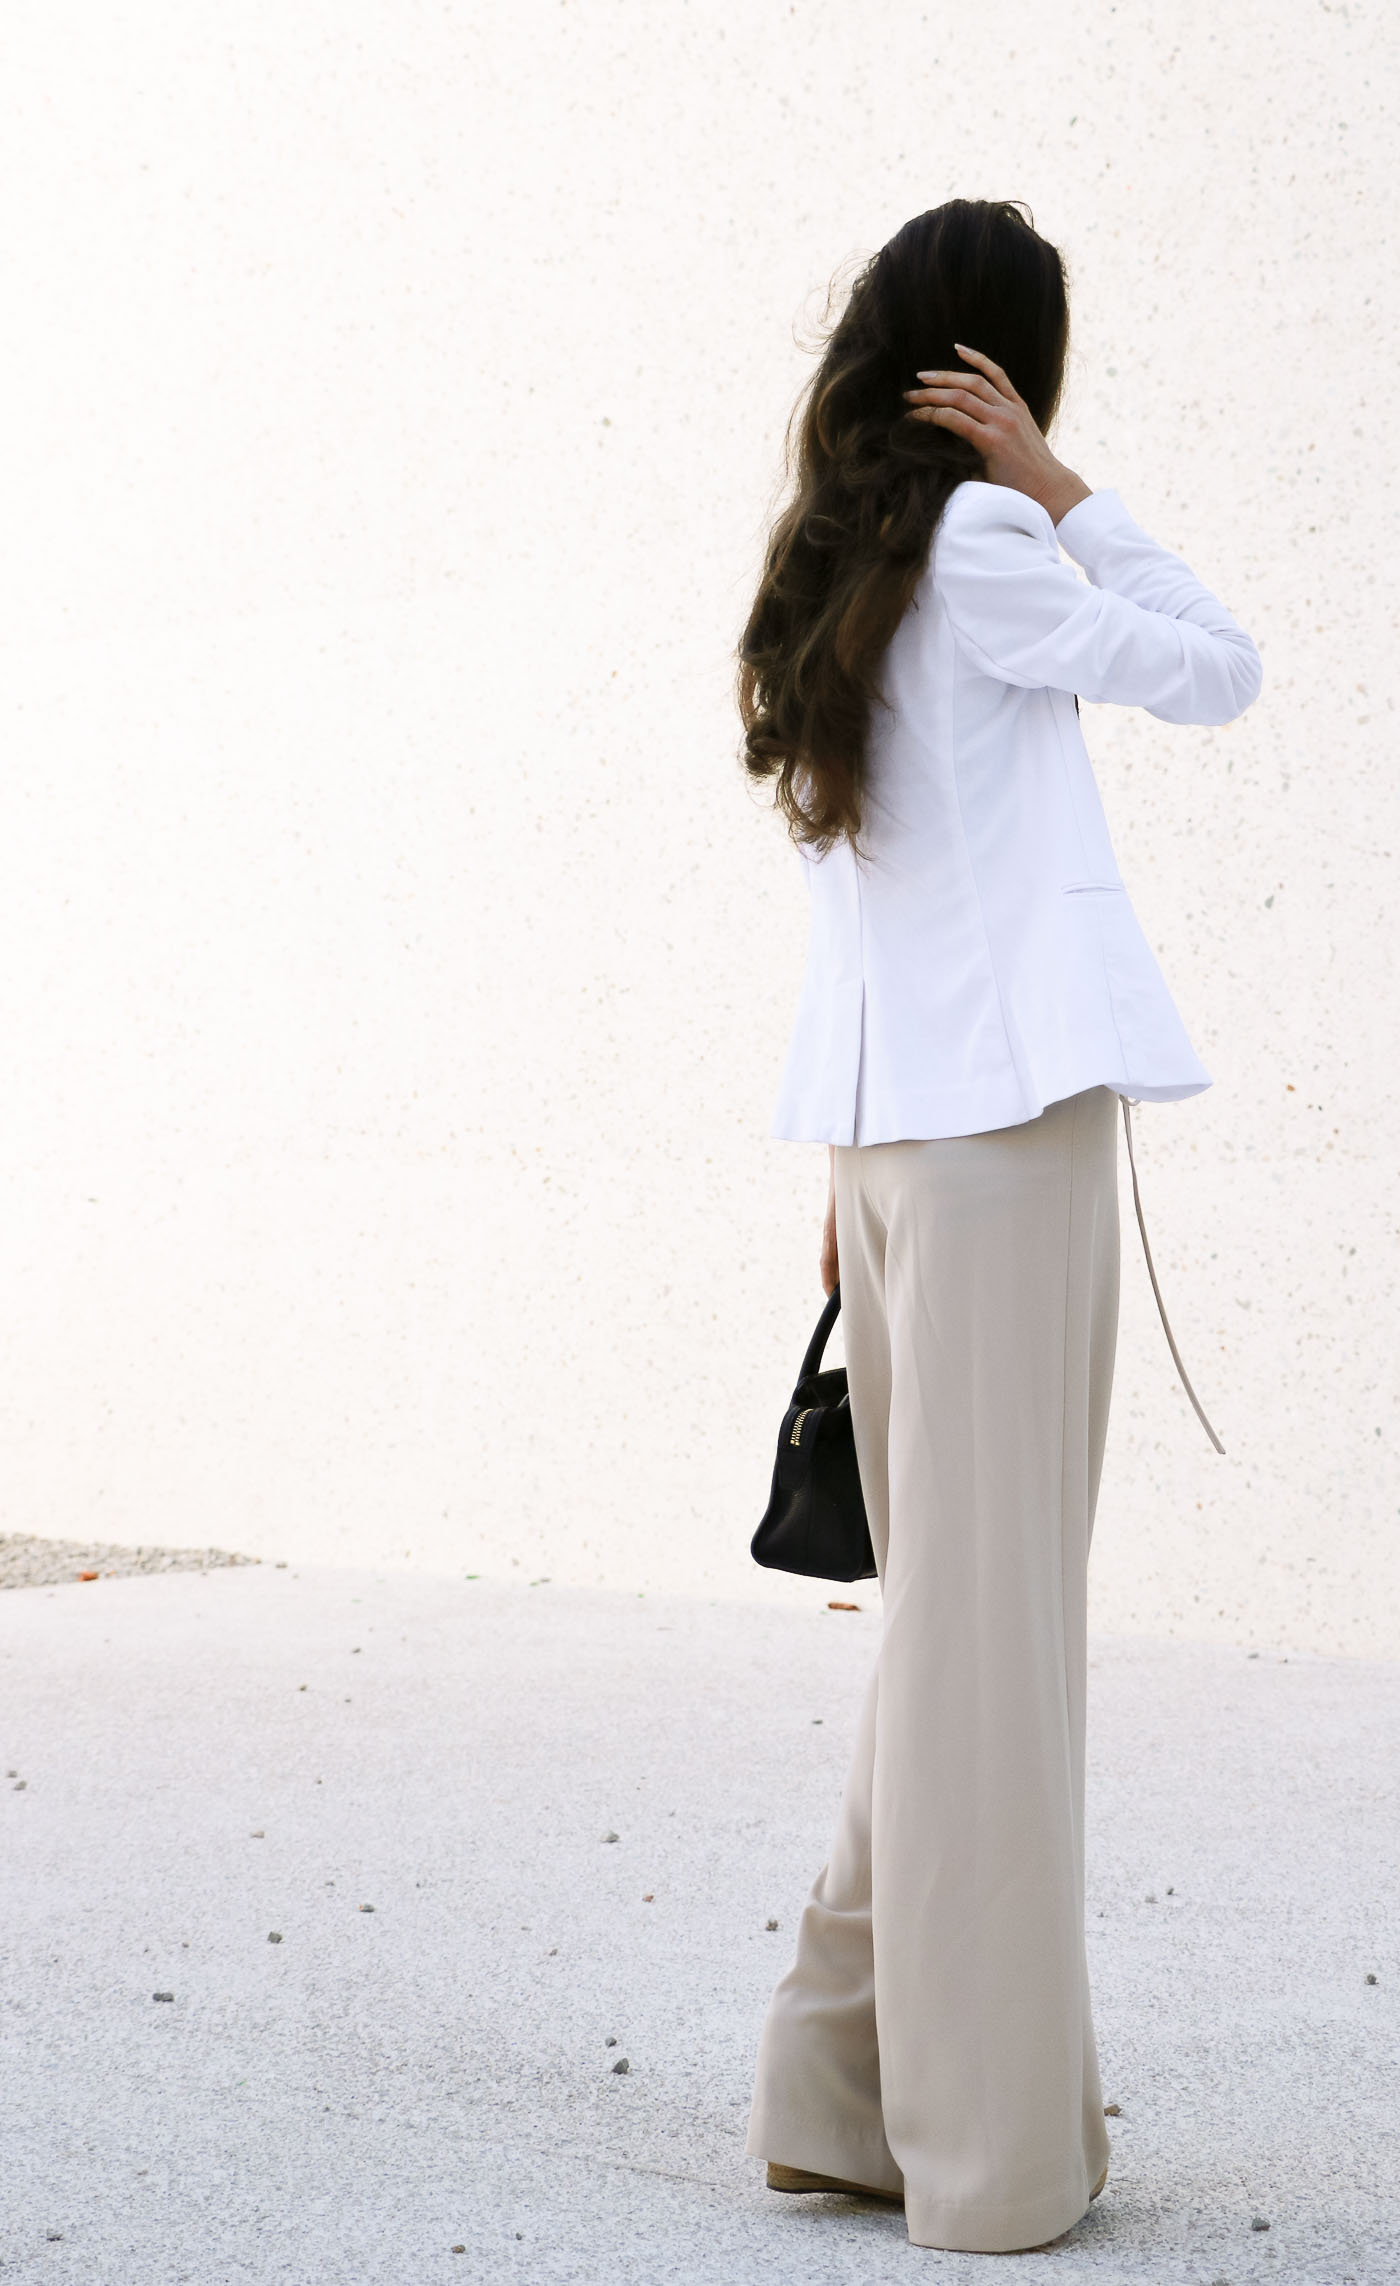 Fashion Blogger Veronika Lipar of Brunette from Wall Street on how to update summer look for fall